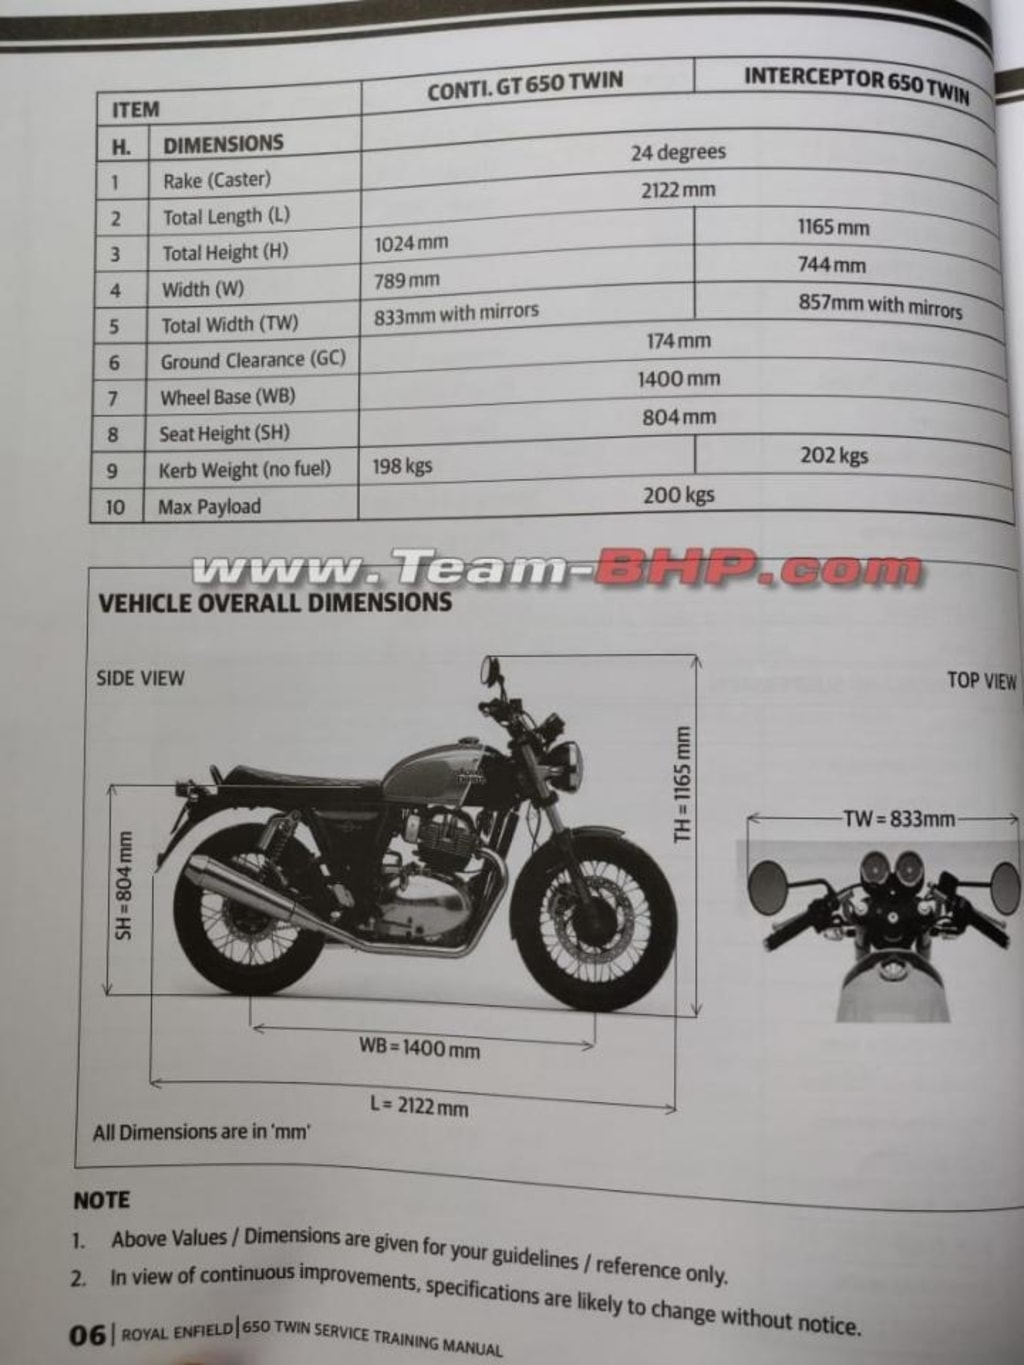 Royal Enfield GT 650 Twin Specifications